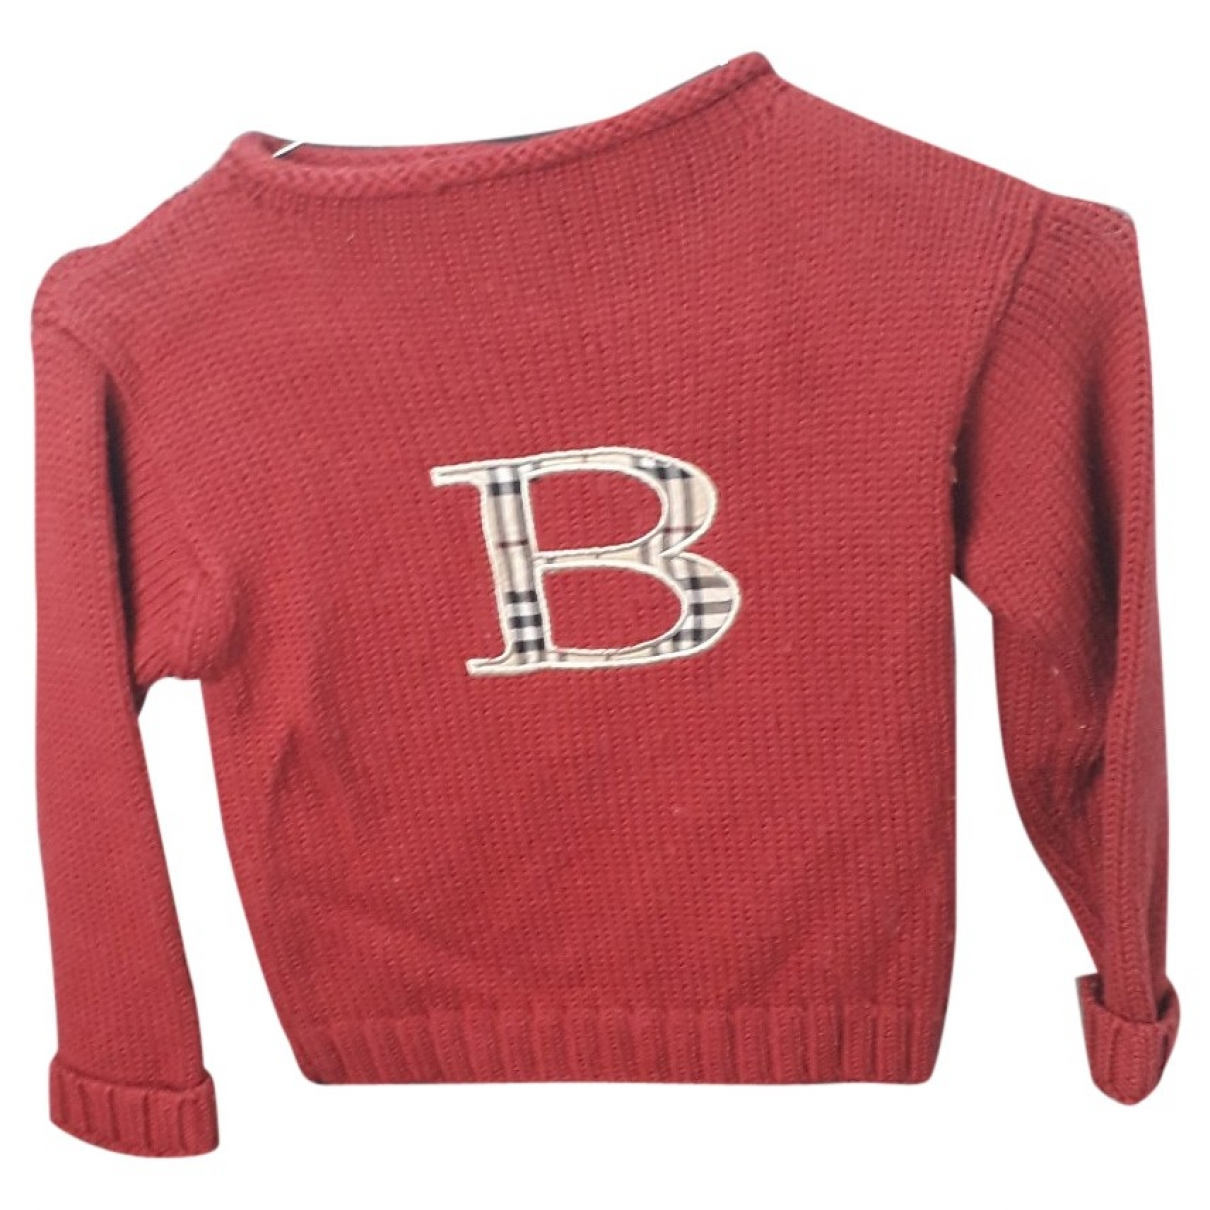 Burberry \N Red Wool Knitwear for Kids 5 years - up to 108cm FR